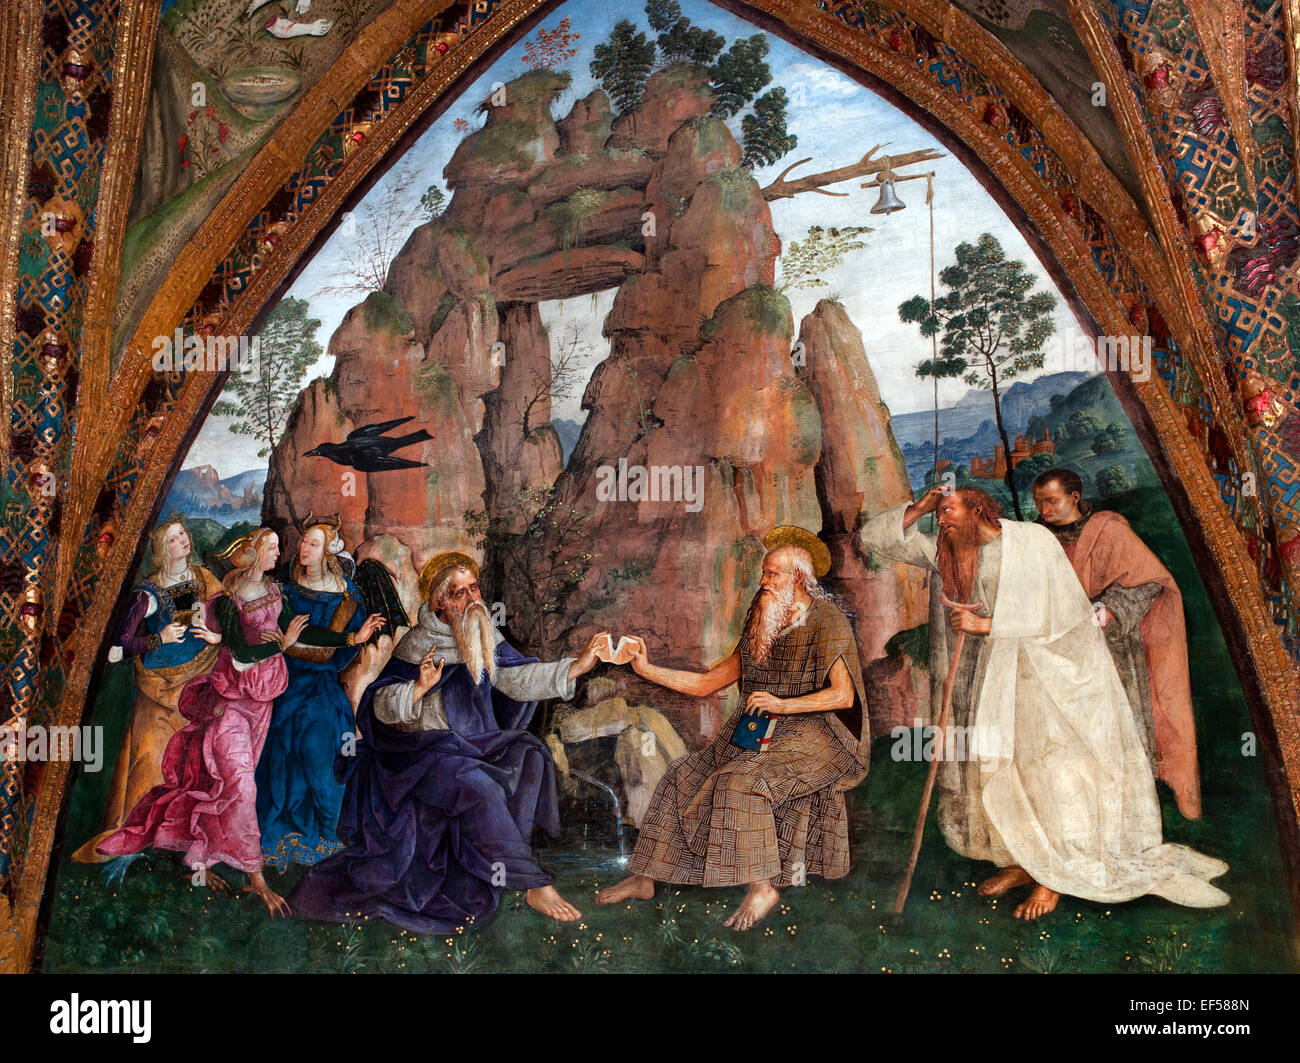 The Encounter Between St. Anthony Abbot & St. Paul the Hermit Fresco Hall of the Saints  Borgia Apartments  - Stock Image